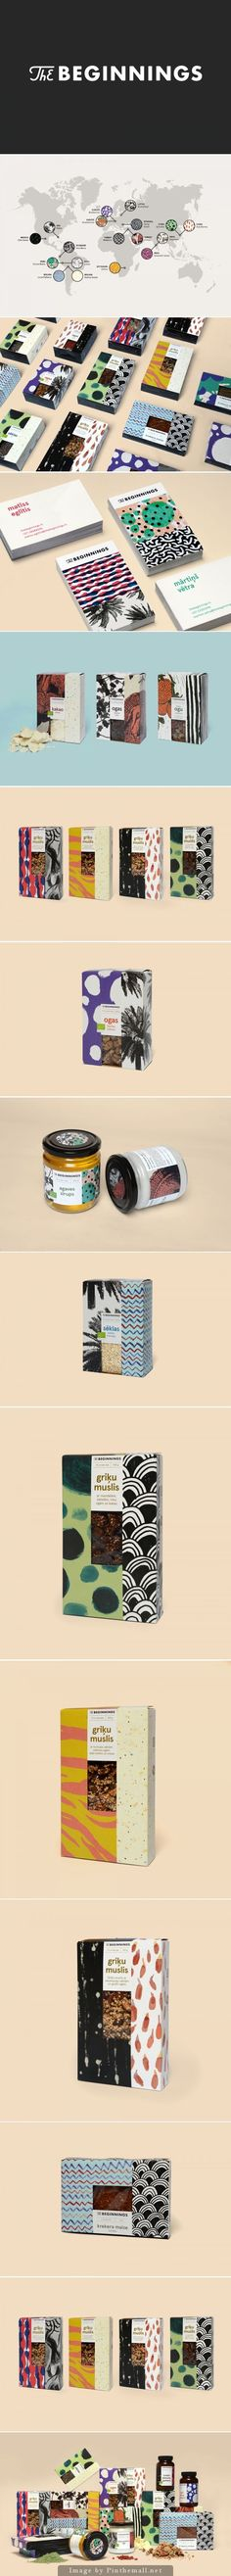 The Beginnings is interesting #identity #packaging #branding PD: